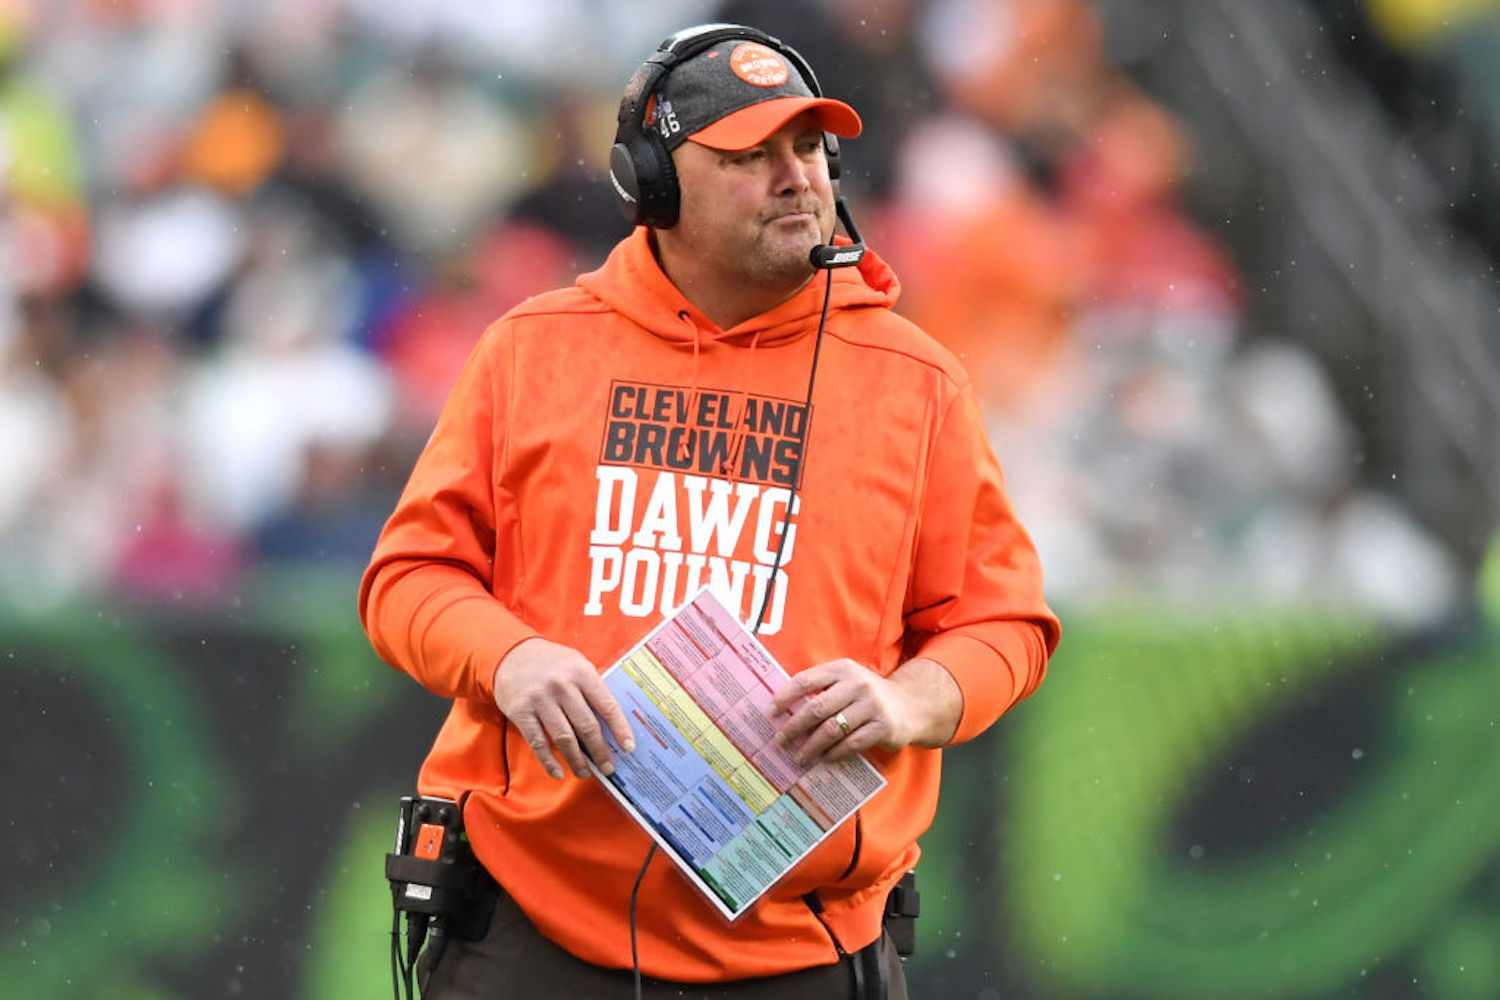 Freddie Kitchens had an underwhelming season with the Cleveland Browns in 2019, but COVID-19 has given him a chance for revenge this weekend.